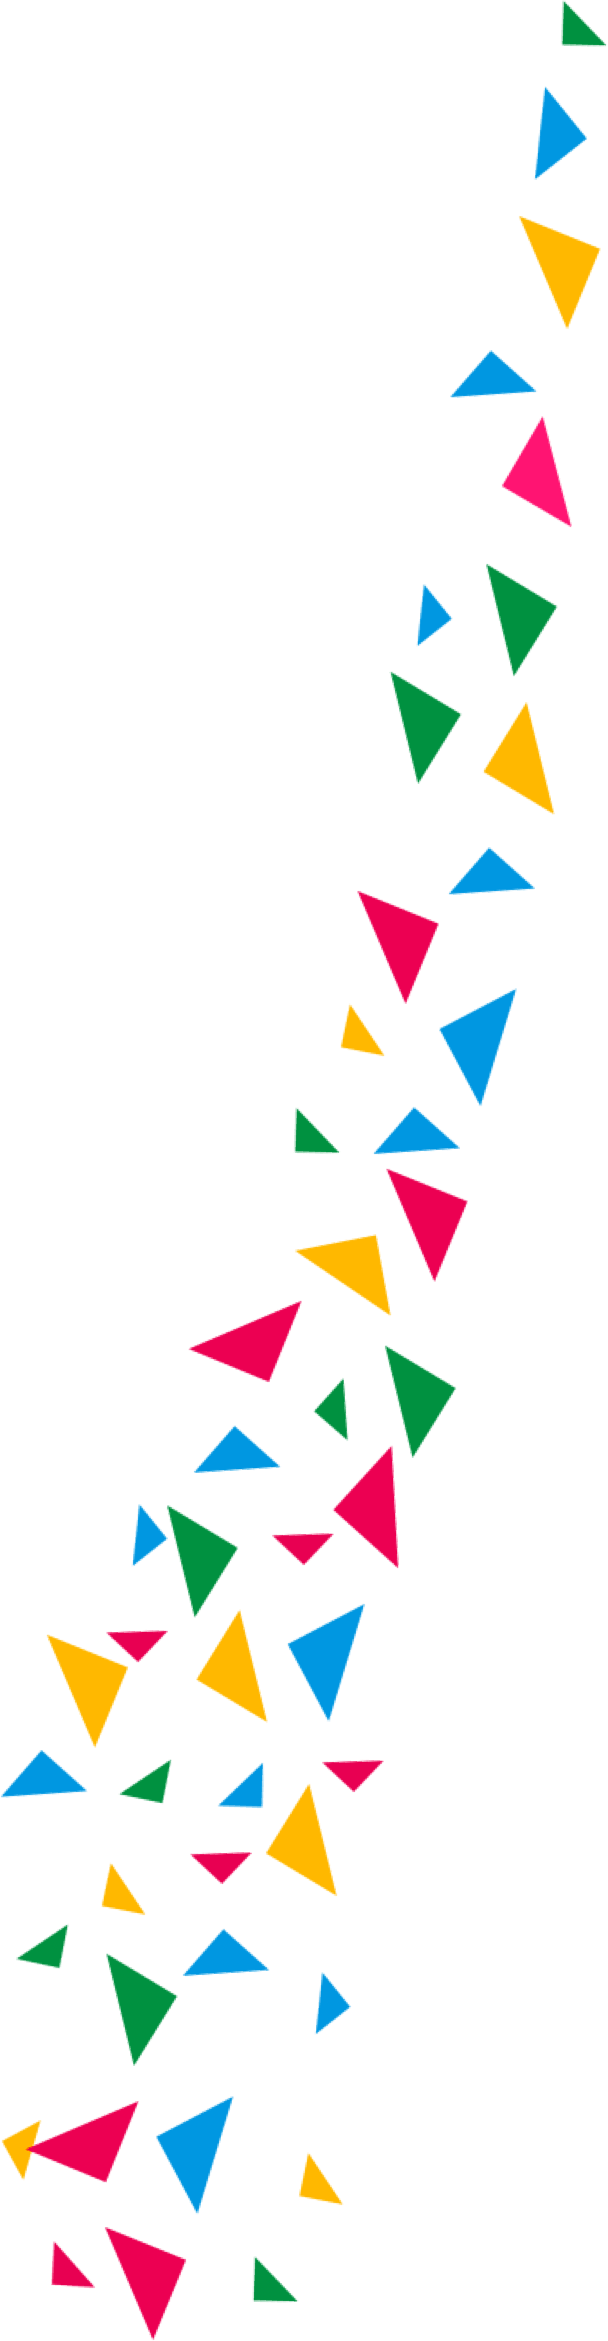 large strip of colourful shards